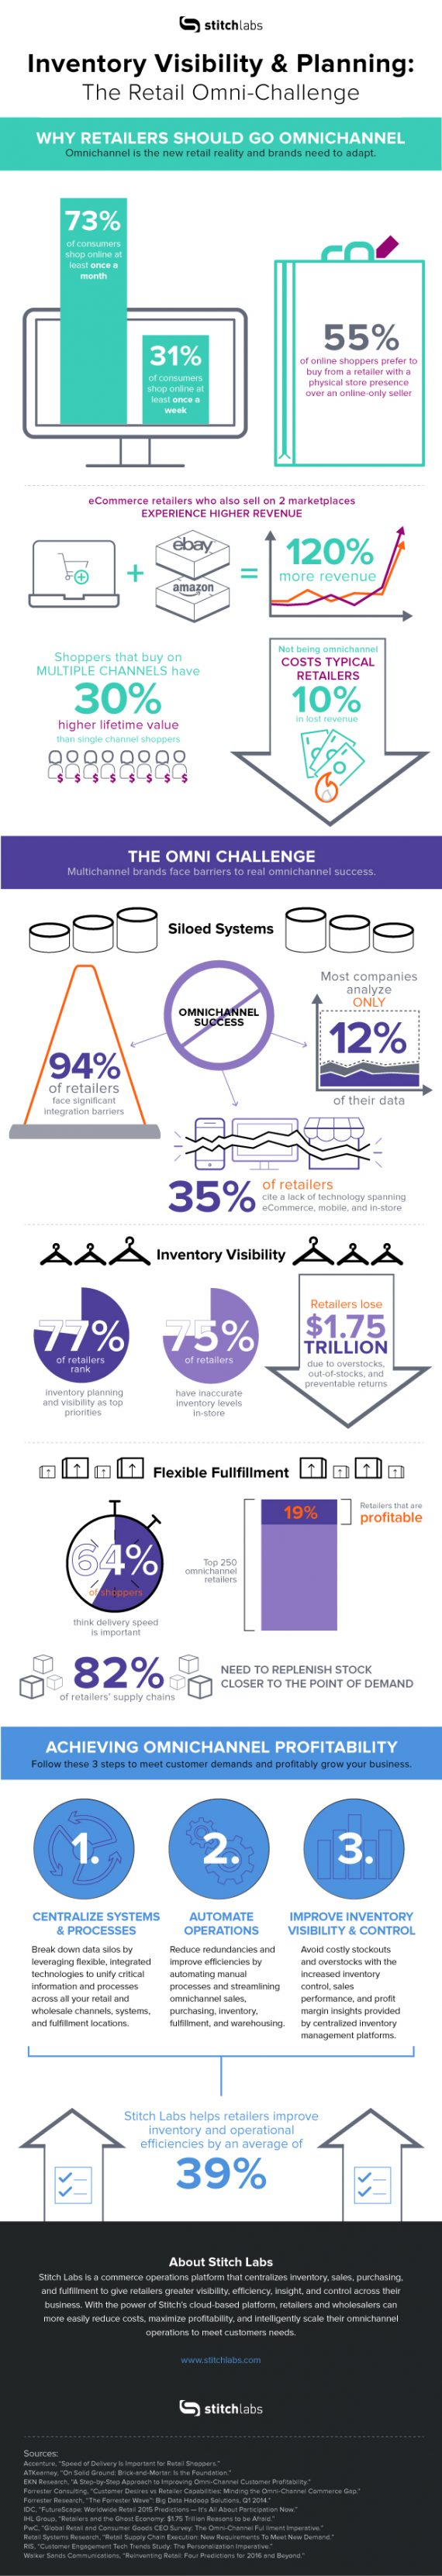 inventoryvisibility_infographic